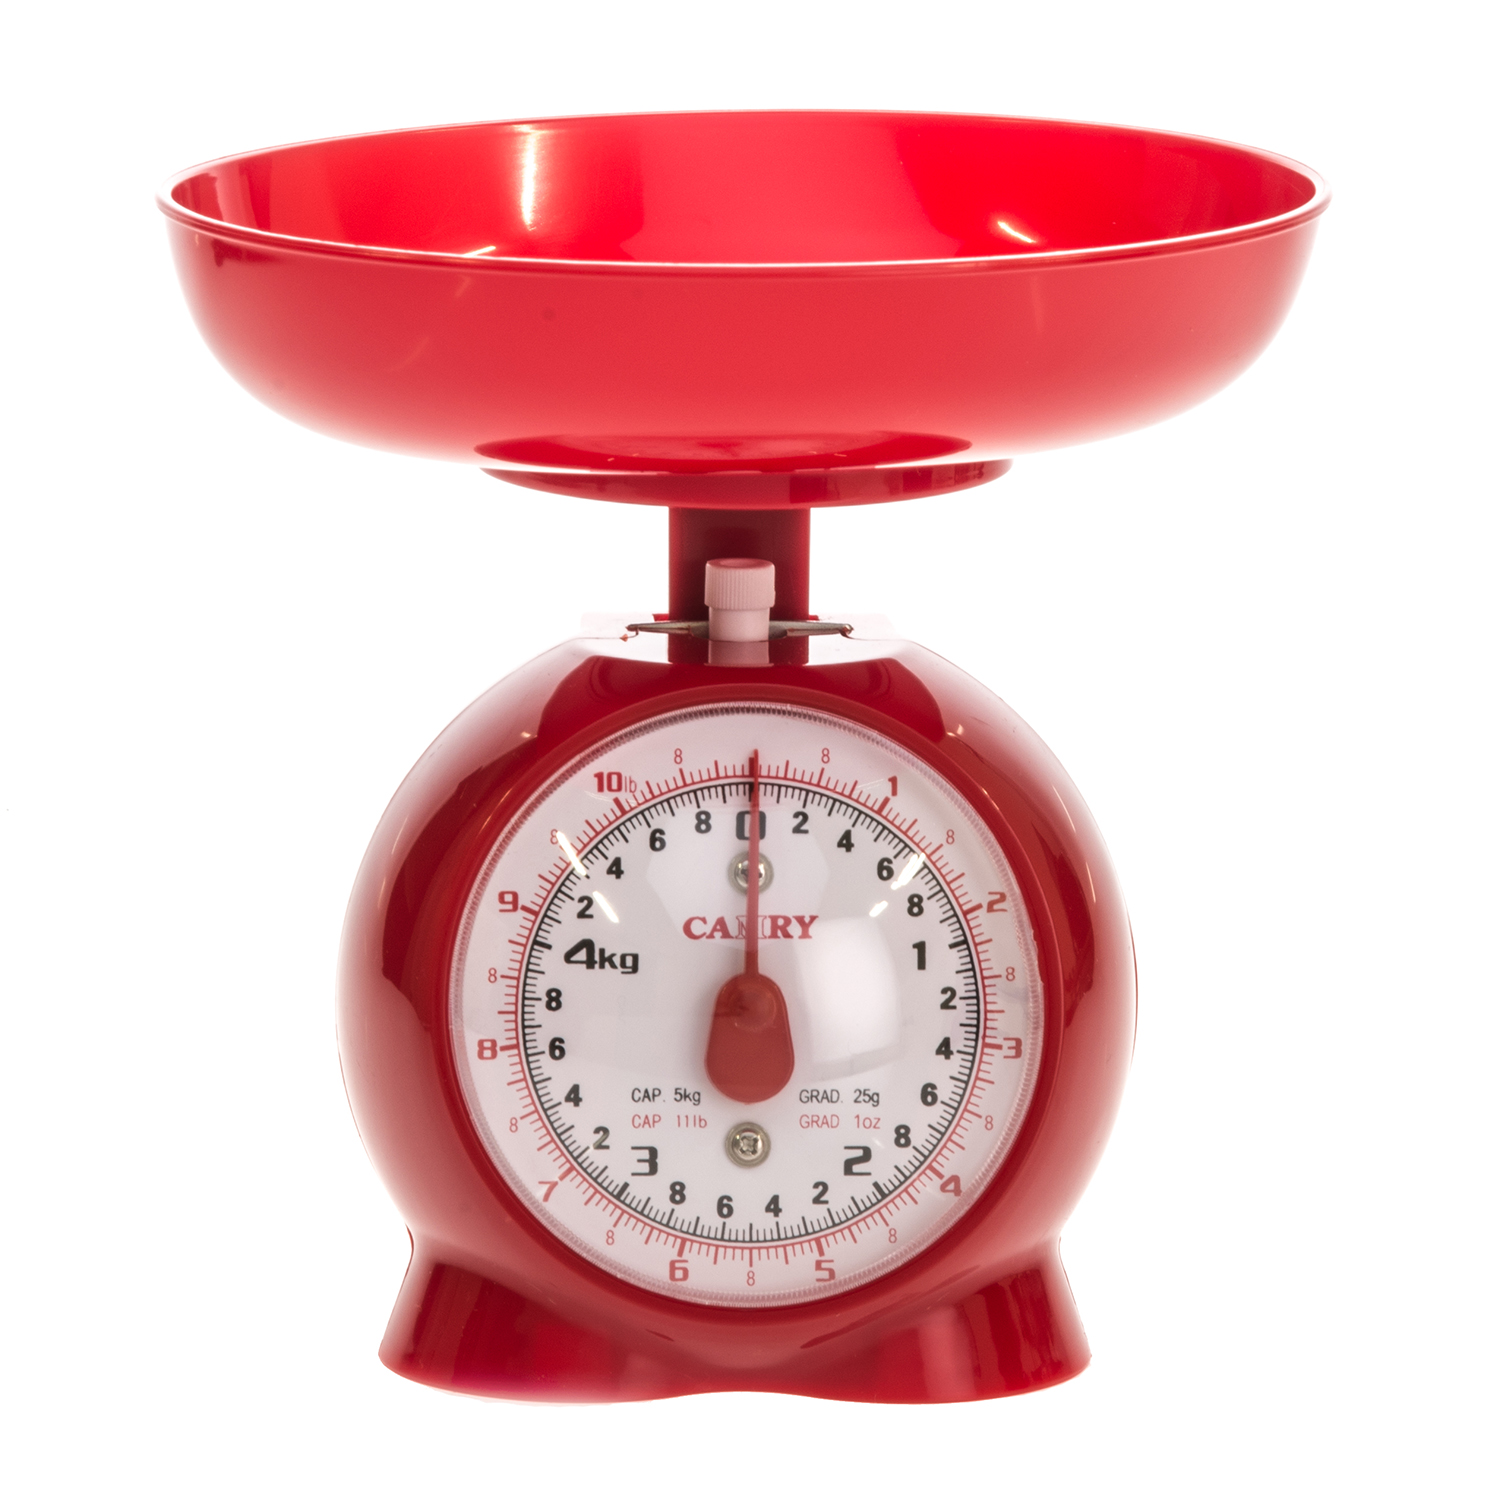 Image of Casa Mechanical Kitchen Scale, Red